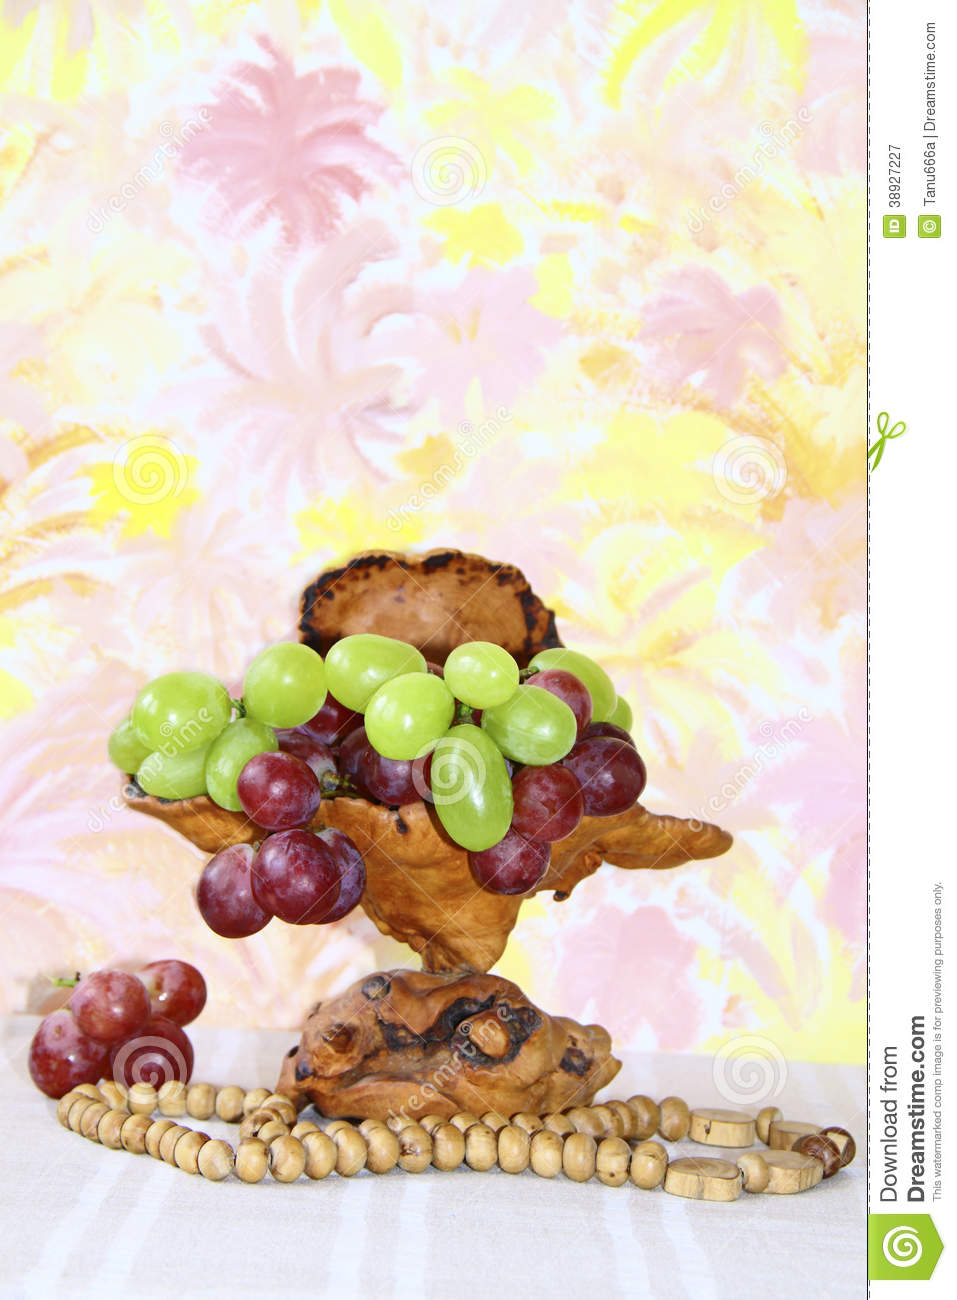 Exclusive wooden vase with pink and green grapes